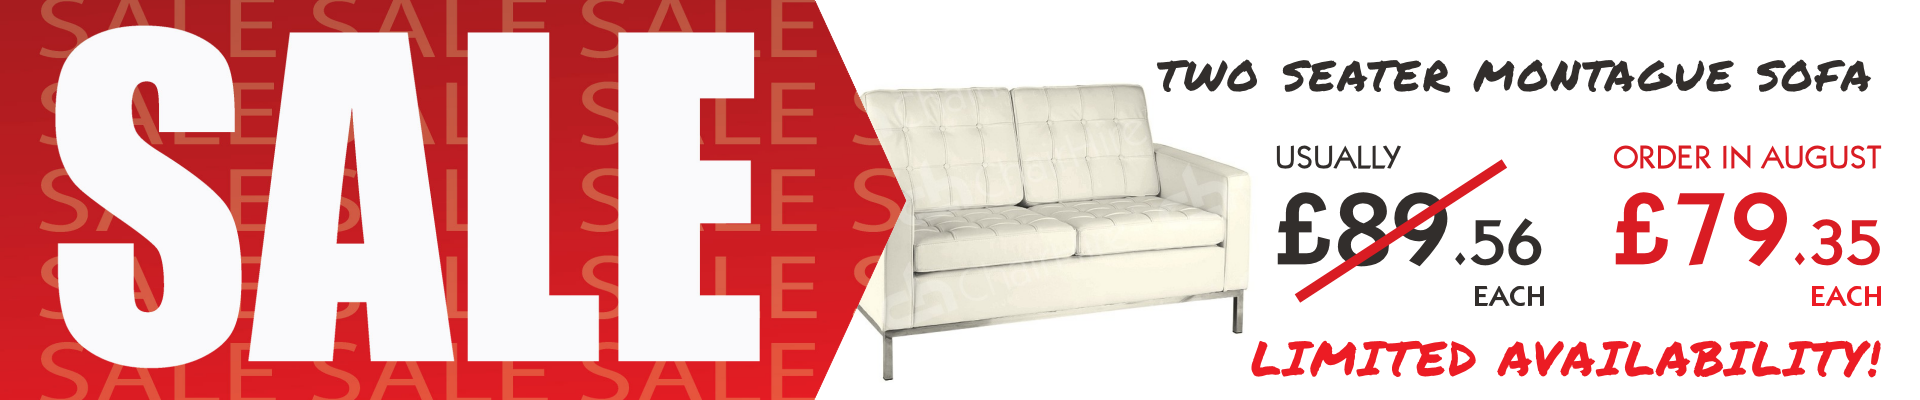 Two Seater Cream Montague Sofa Sale